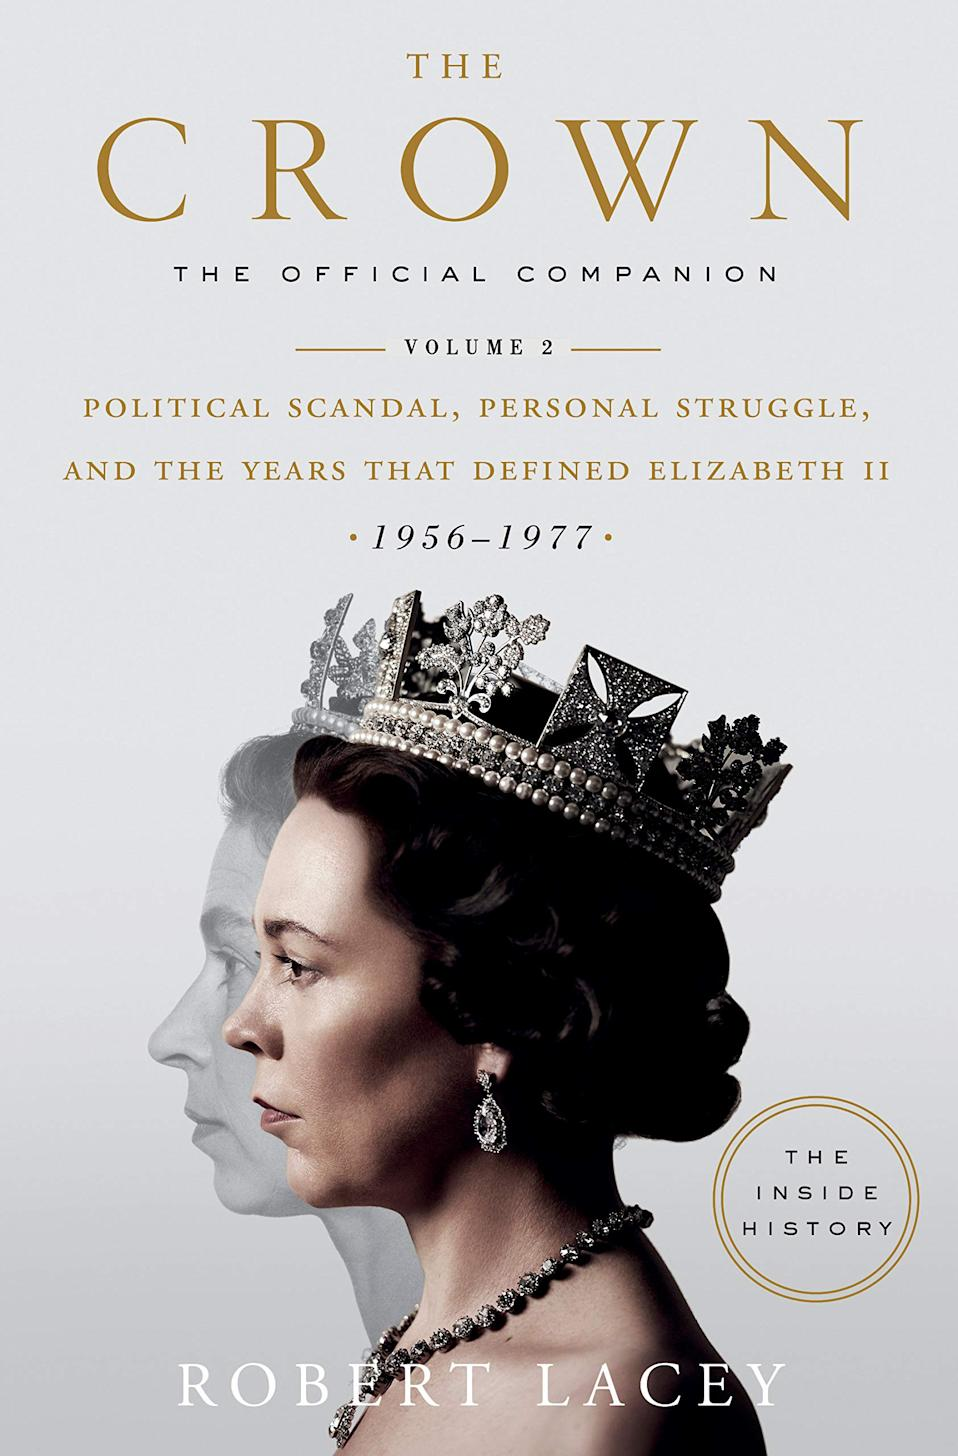 The Crown: The Official Companion, Volume 2: Political Scandal, Personal Struggle, and the Years that Defined Elizabeth II (1956-1977): Lacey, Robert: 9780525573371: Amazon.com: Books